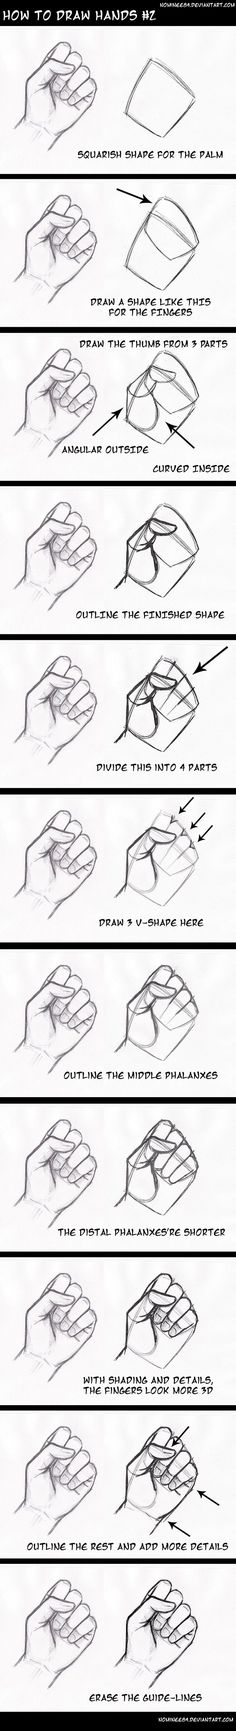 how to draw hands2 by nominee84 on DeviantArt. Es muy interesante. Mas tarde hare esta idea. Ya que nunca me salen bien las manos.